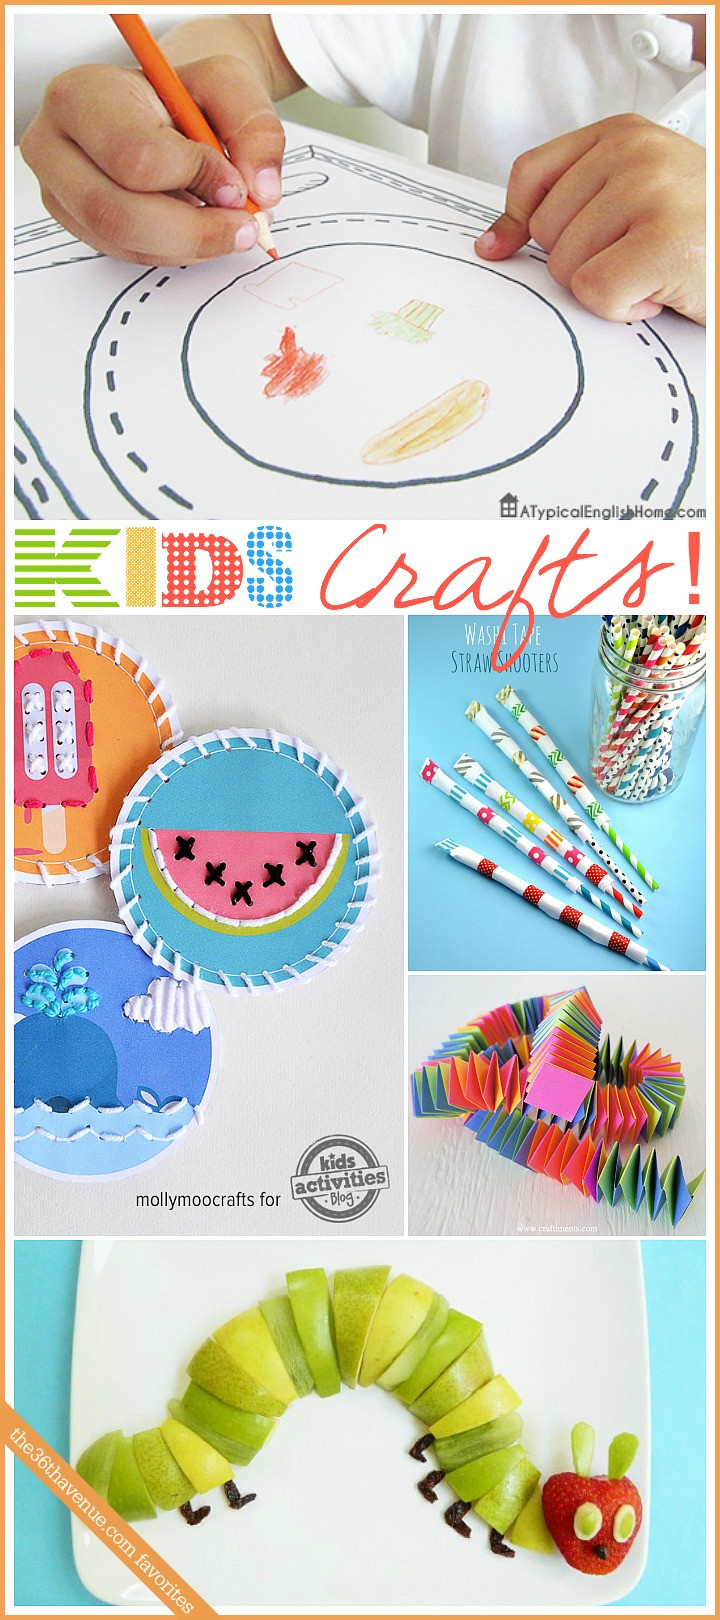 Best ideas about Kids Craft Projects . Save or Pin Kids Crafts and Activities The 36th AVENUE Now.